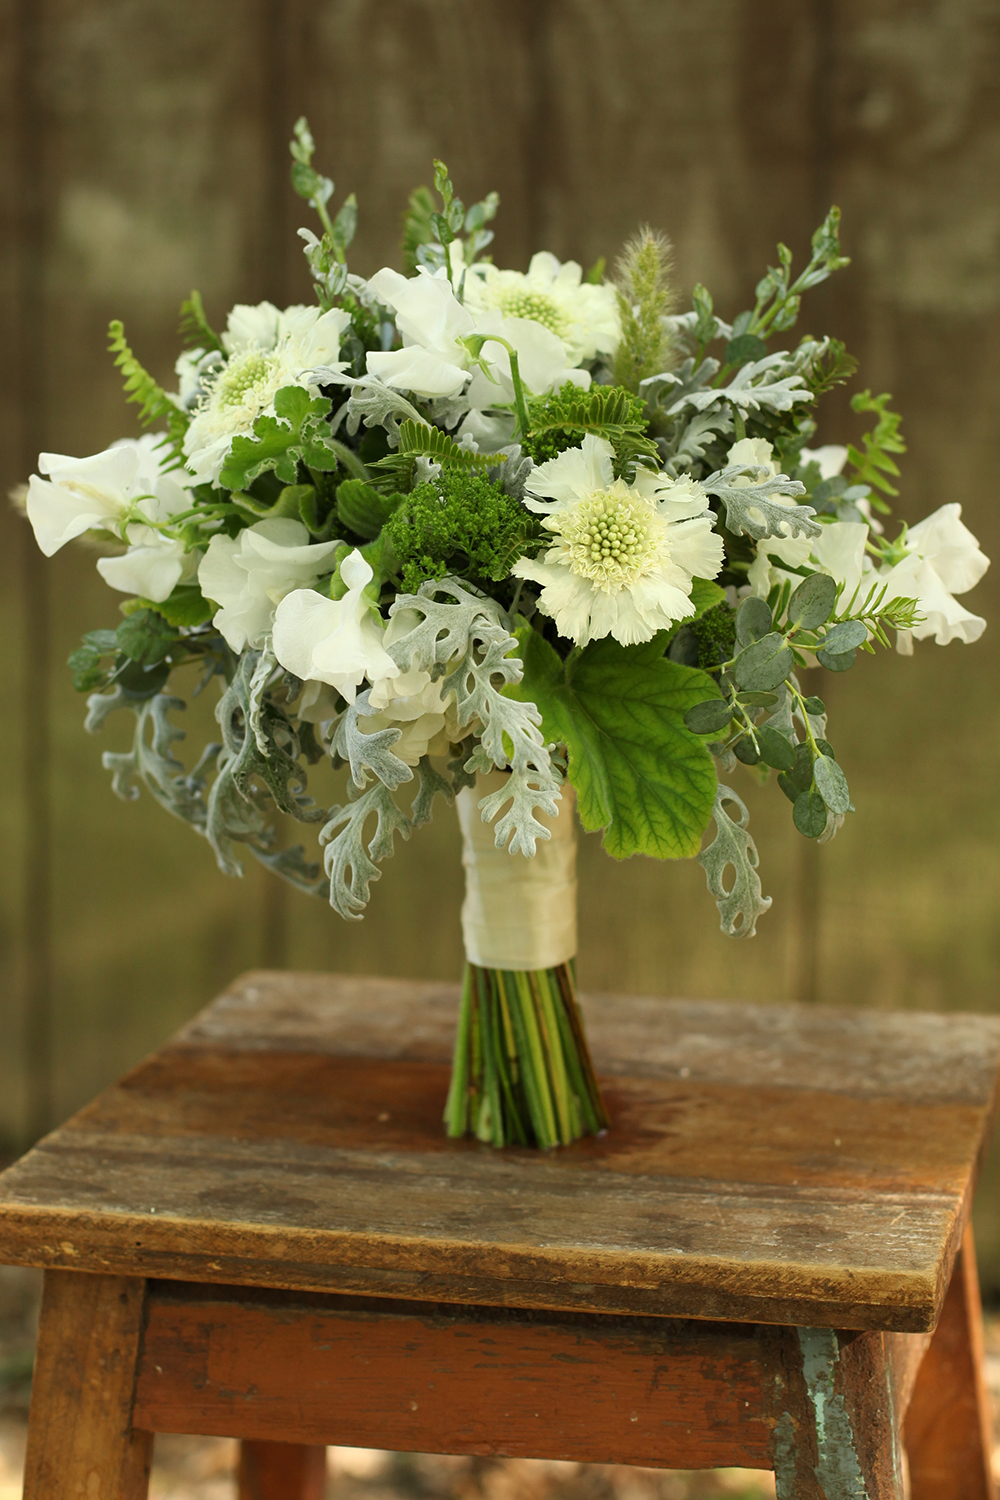 bridesmaid bouquet by wedding florist Floral Verde LLC in Cincinnati, Ohio; with white scabiosa, white Japanese sweet pea, bunny tail grass, Kimberly Queen fern, Jade trachelium, scented geranium, gunnii eucalyptus and dusty miller.